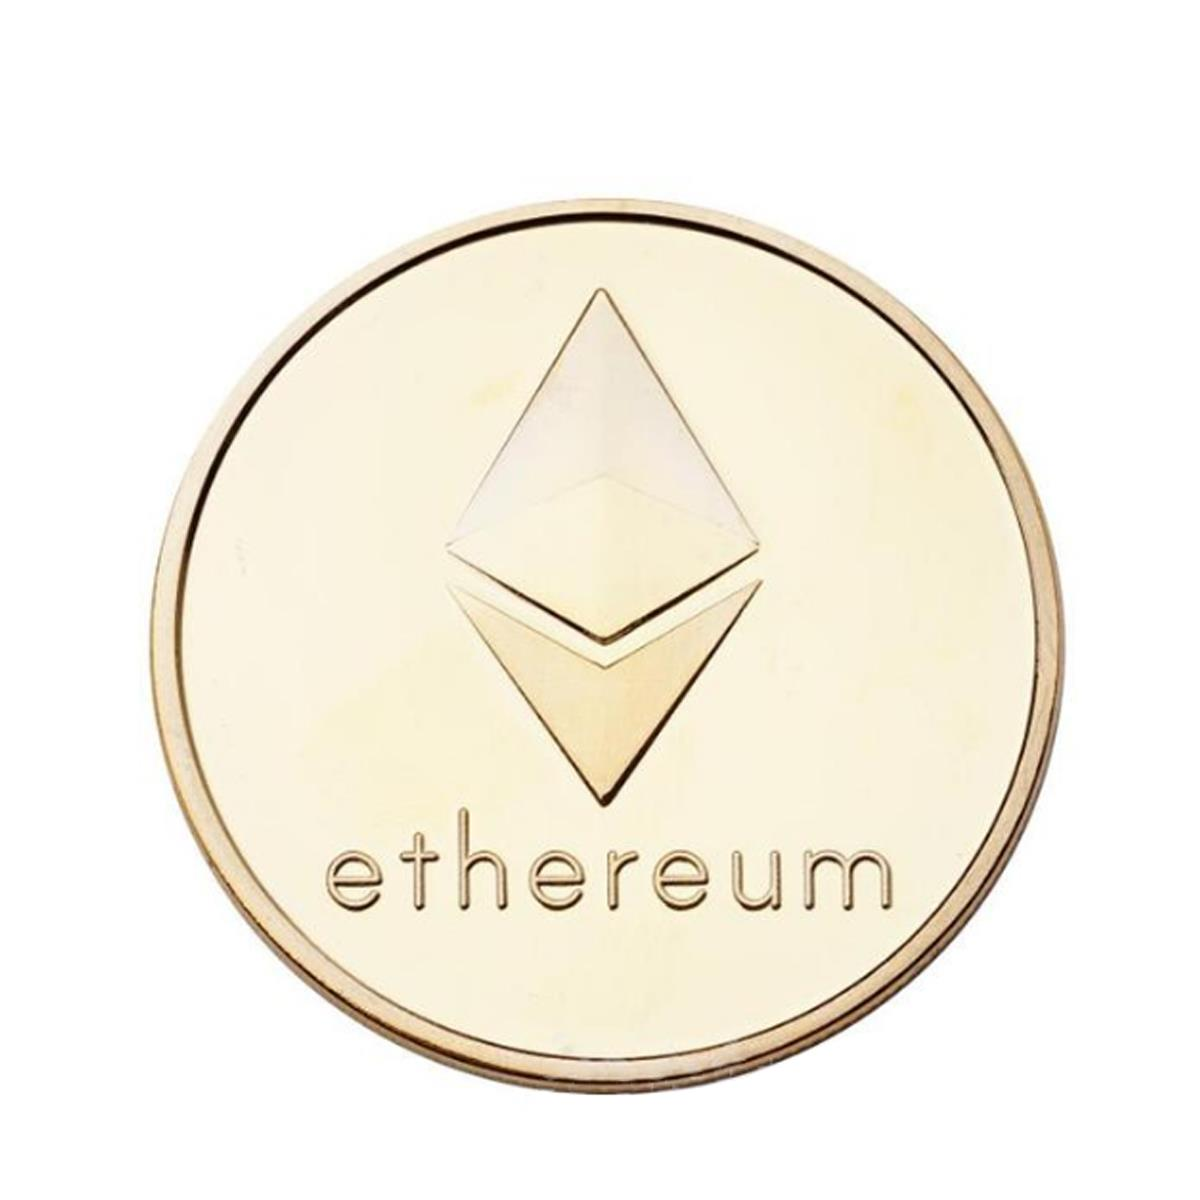 Gold Plated Ethereum Coin Coins Collectibles Mteal Art Antique Coins EDC Gadget